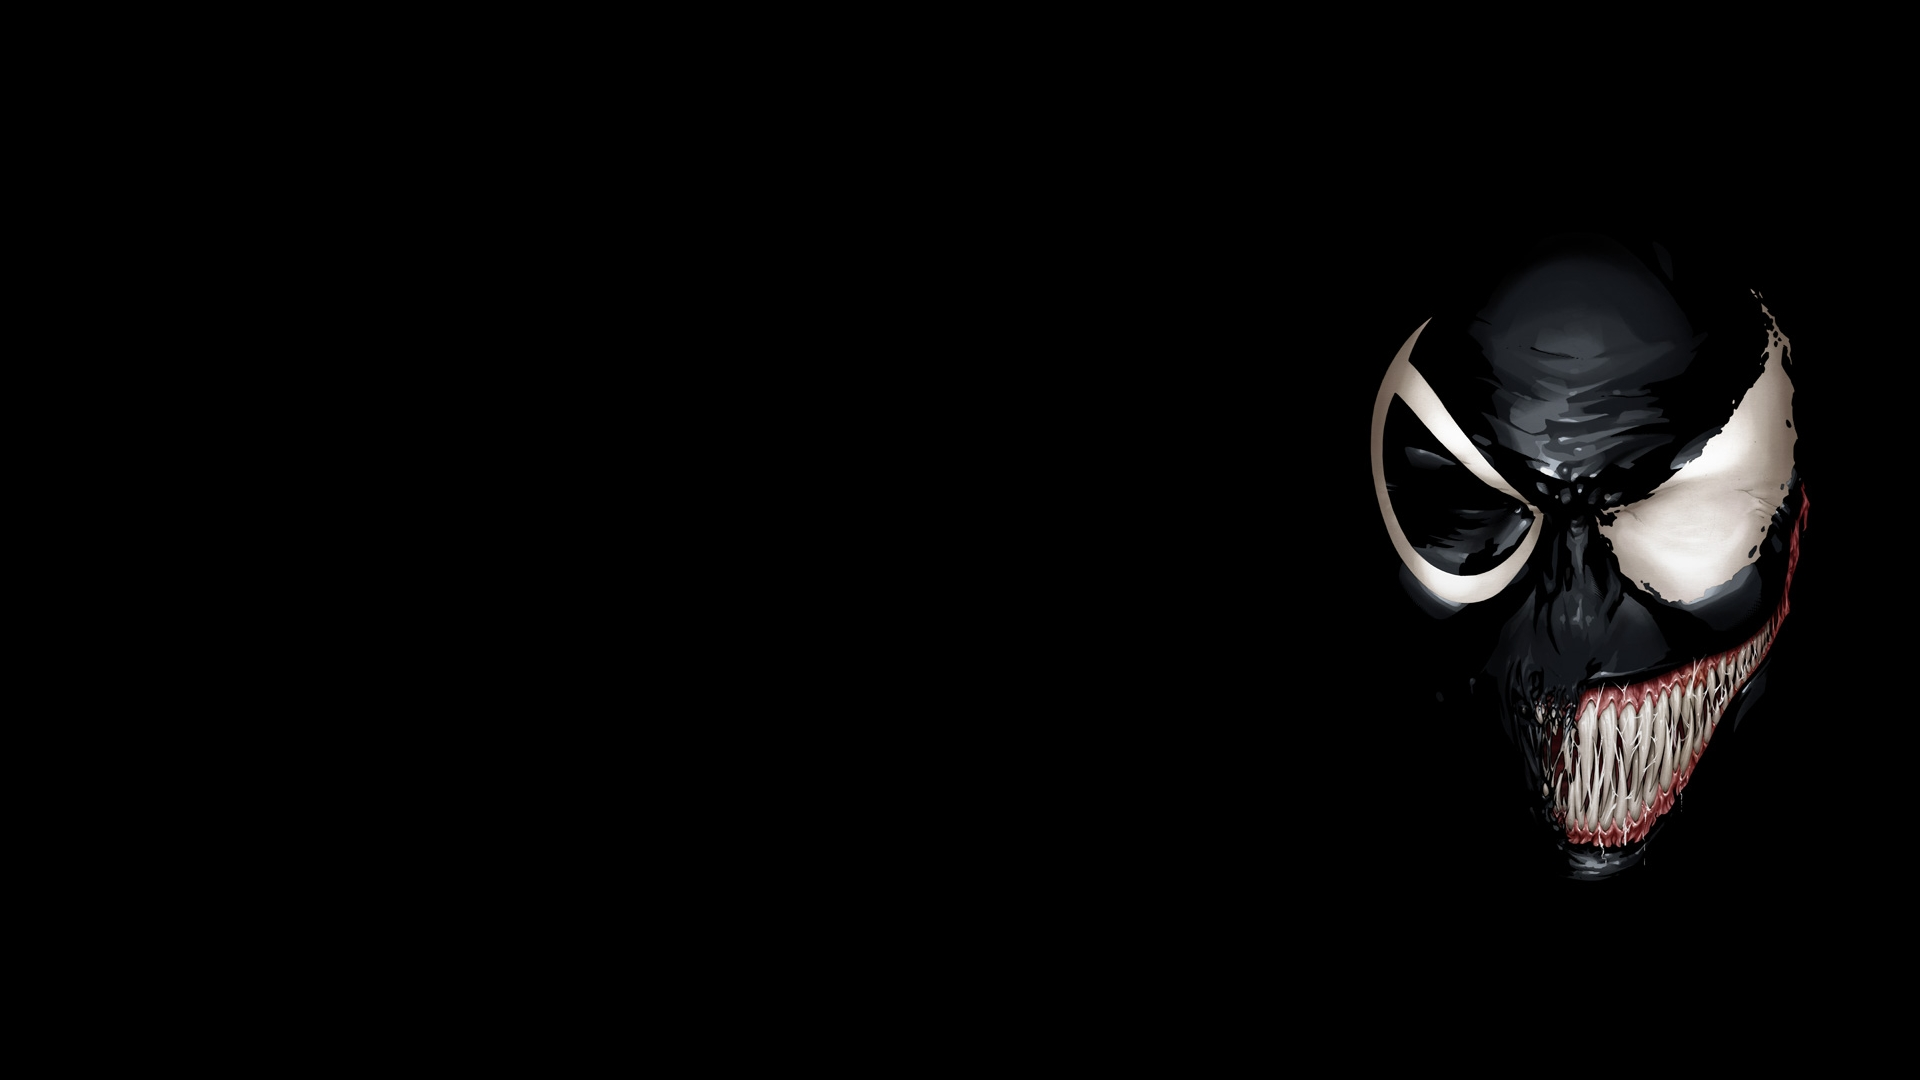 Venom hd wallpapers for desktop download - Venom hd wallpaper android ...